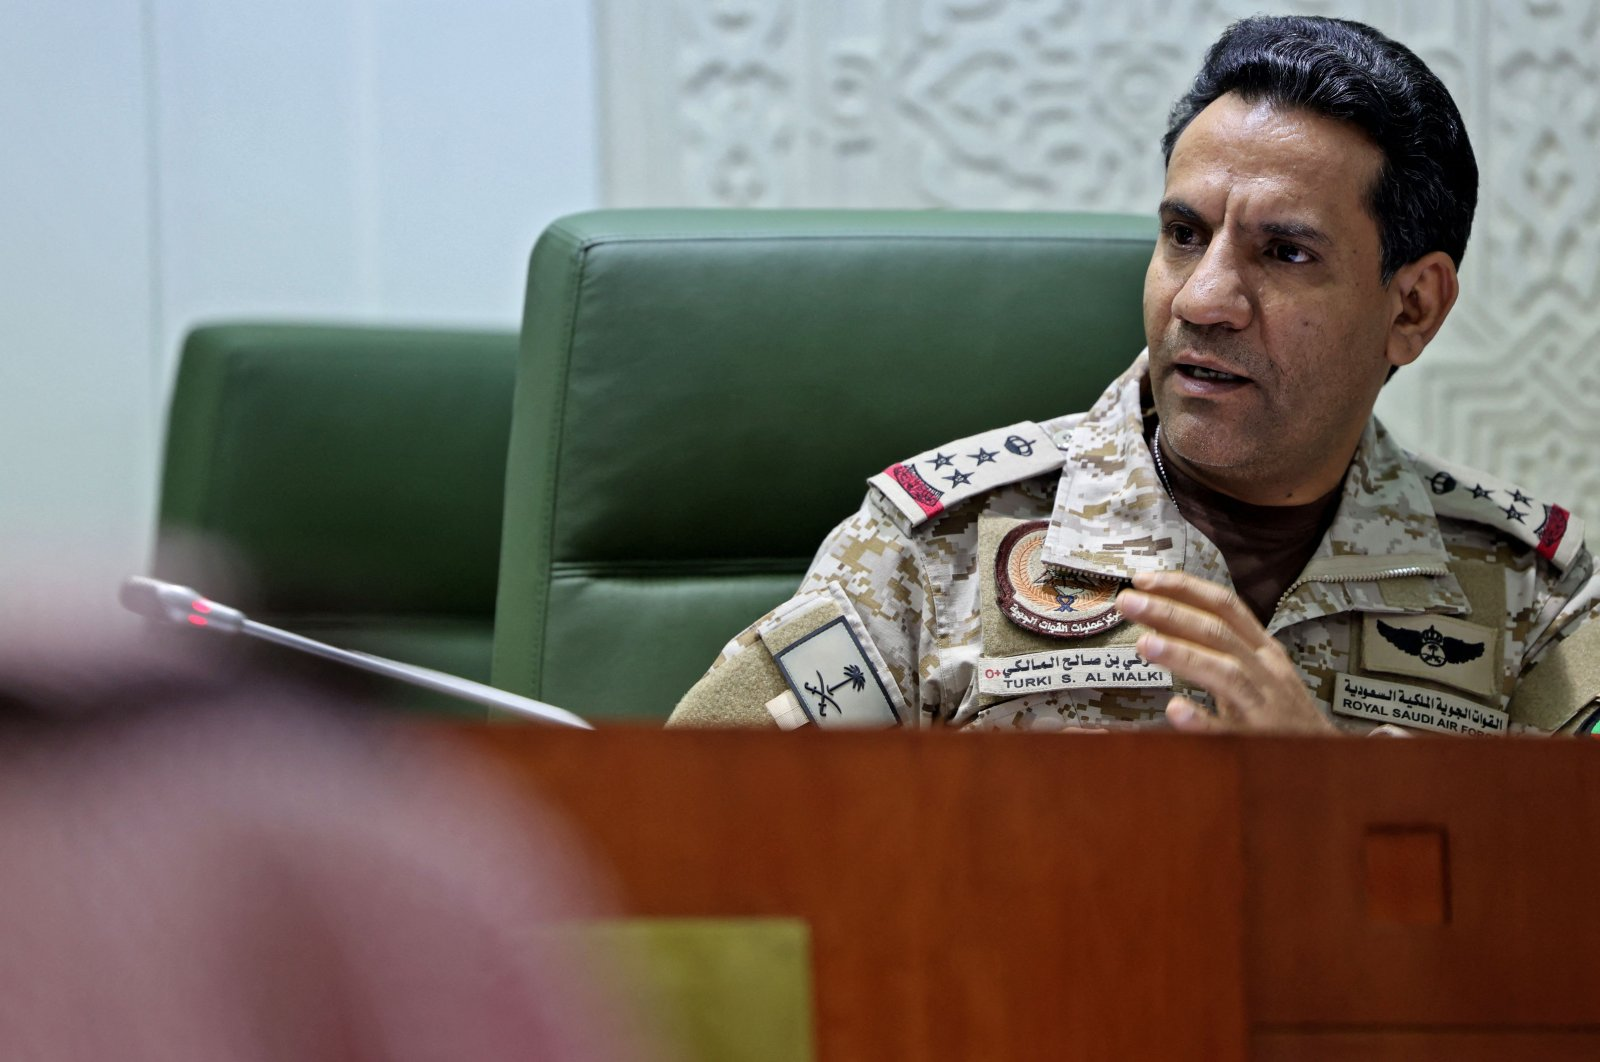 Spokesperson of the Saudi-led military coalition in Yemen Colonel Turki al-Maliki speaks during a press conference in the capital Riyadh, Saudi Arabia, March 22, 2021. (AFP Photo)